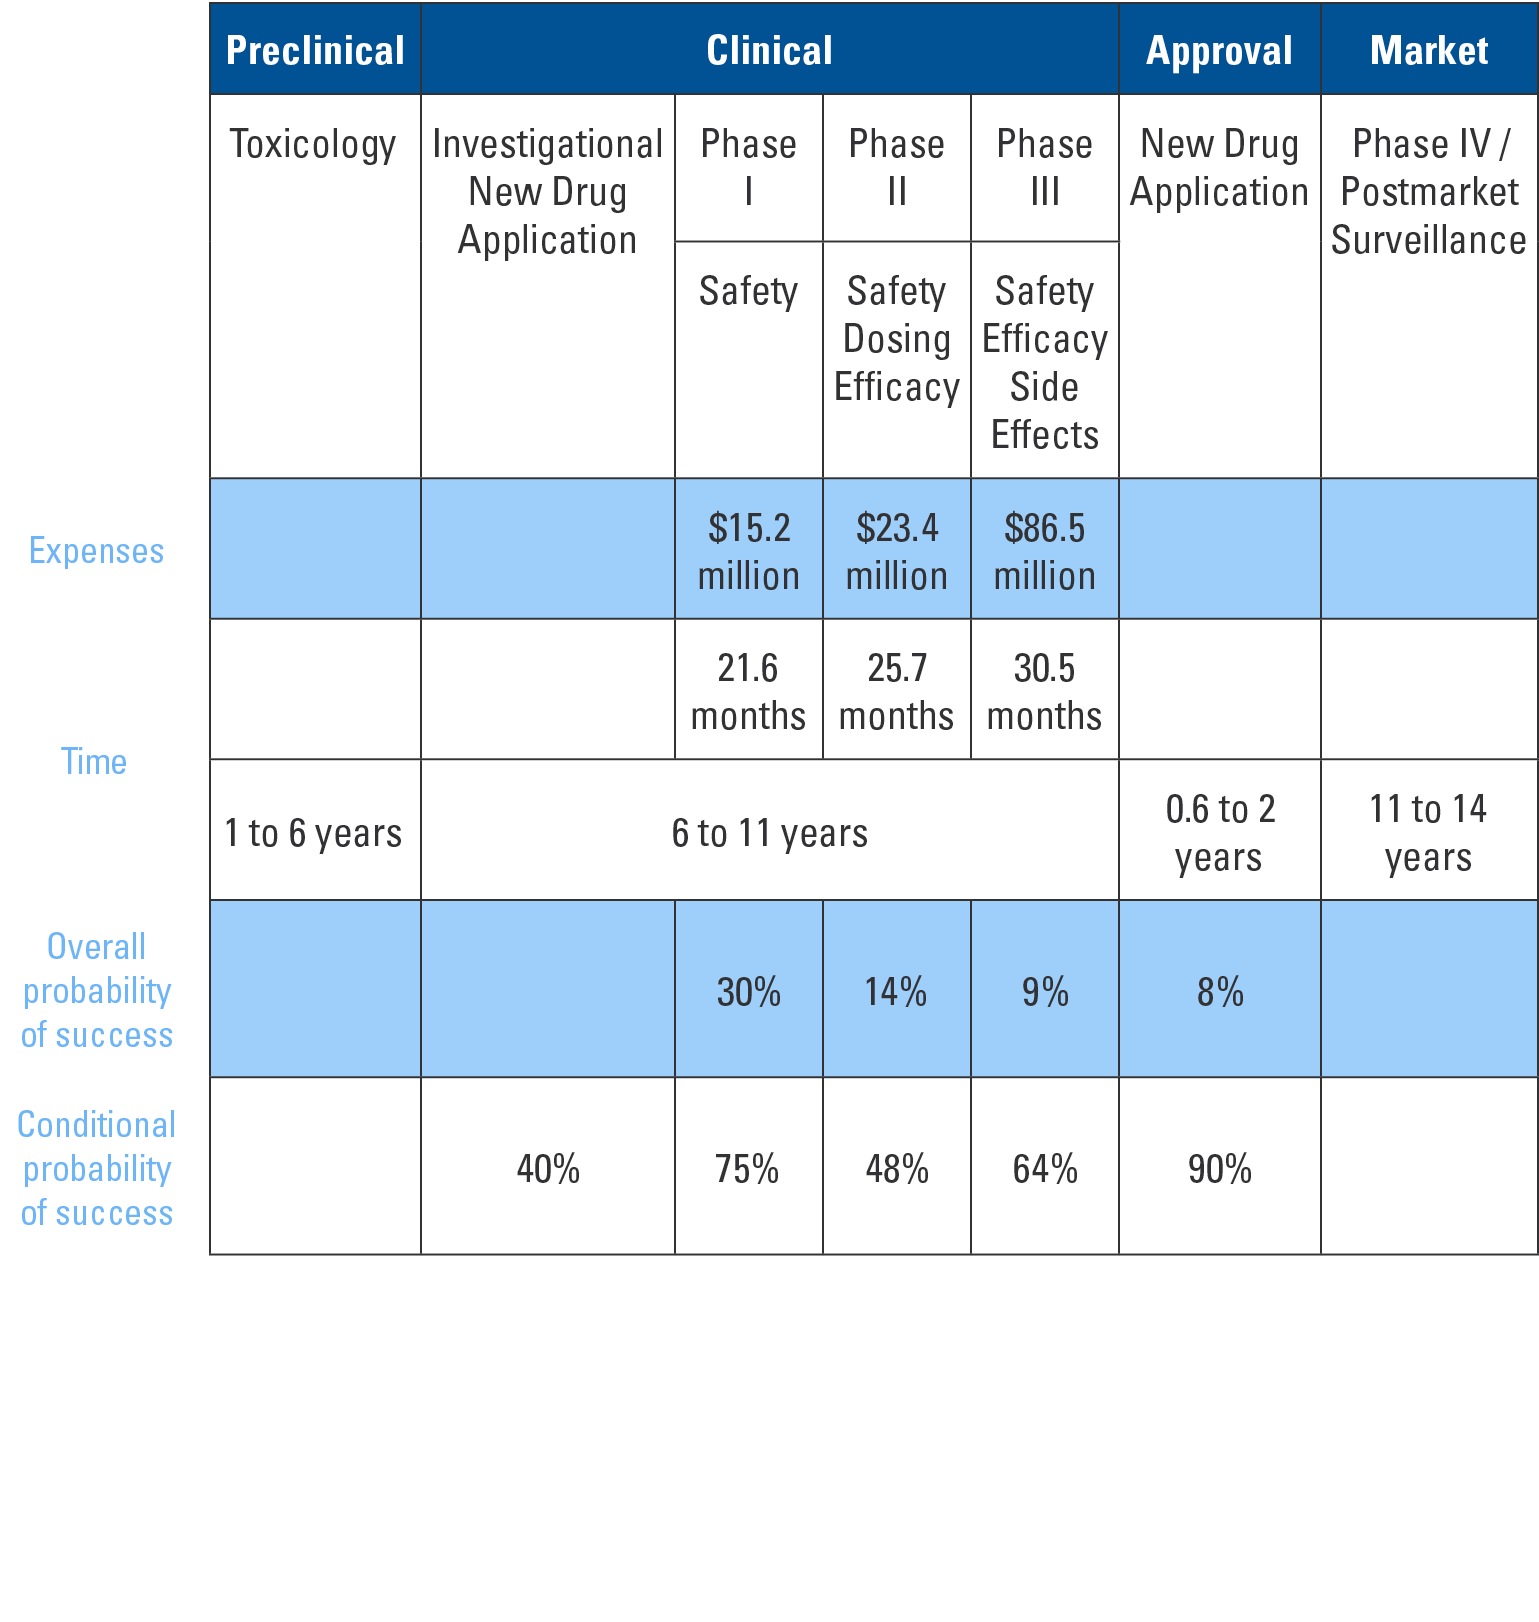 Table showing the FDA Drug Approval Process. Broken into Preclinical, Clinical, Approval and Market phases highlighting expenses, time, overall probability of success and conditional probability of success.